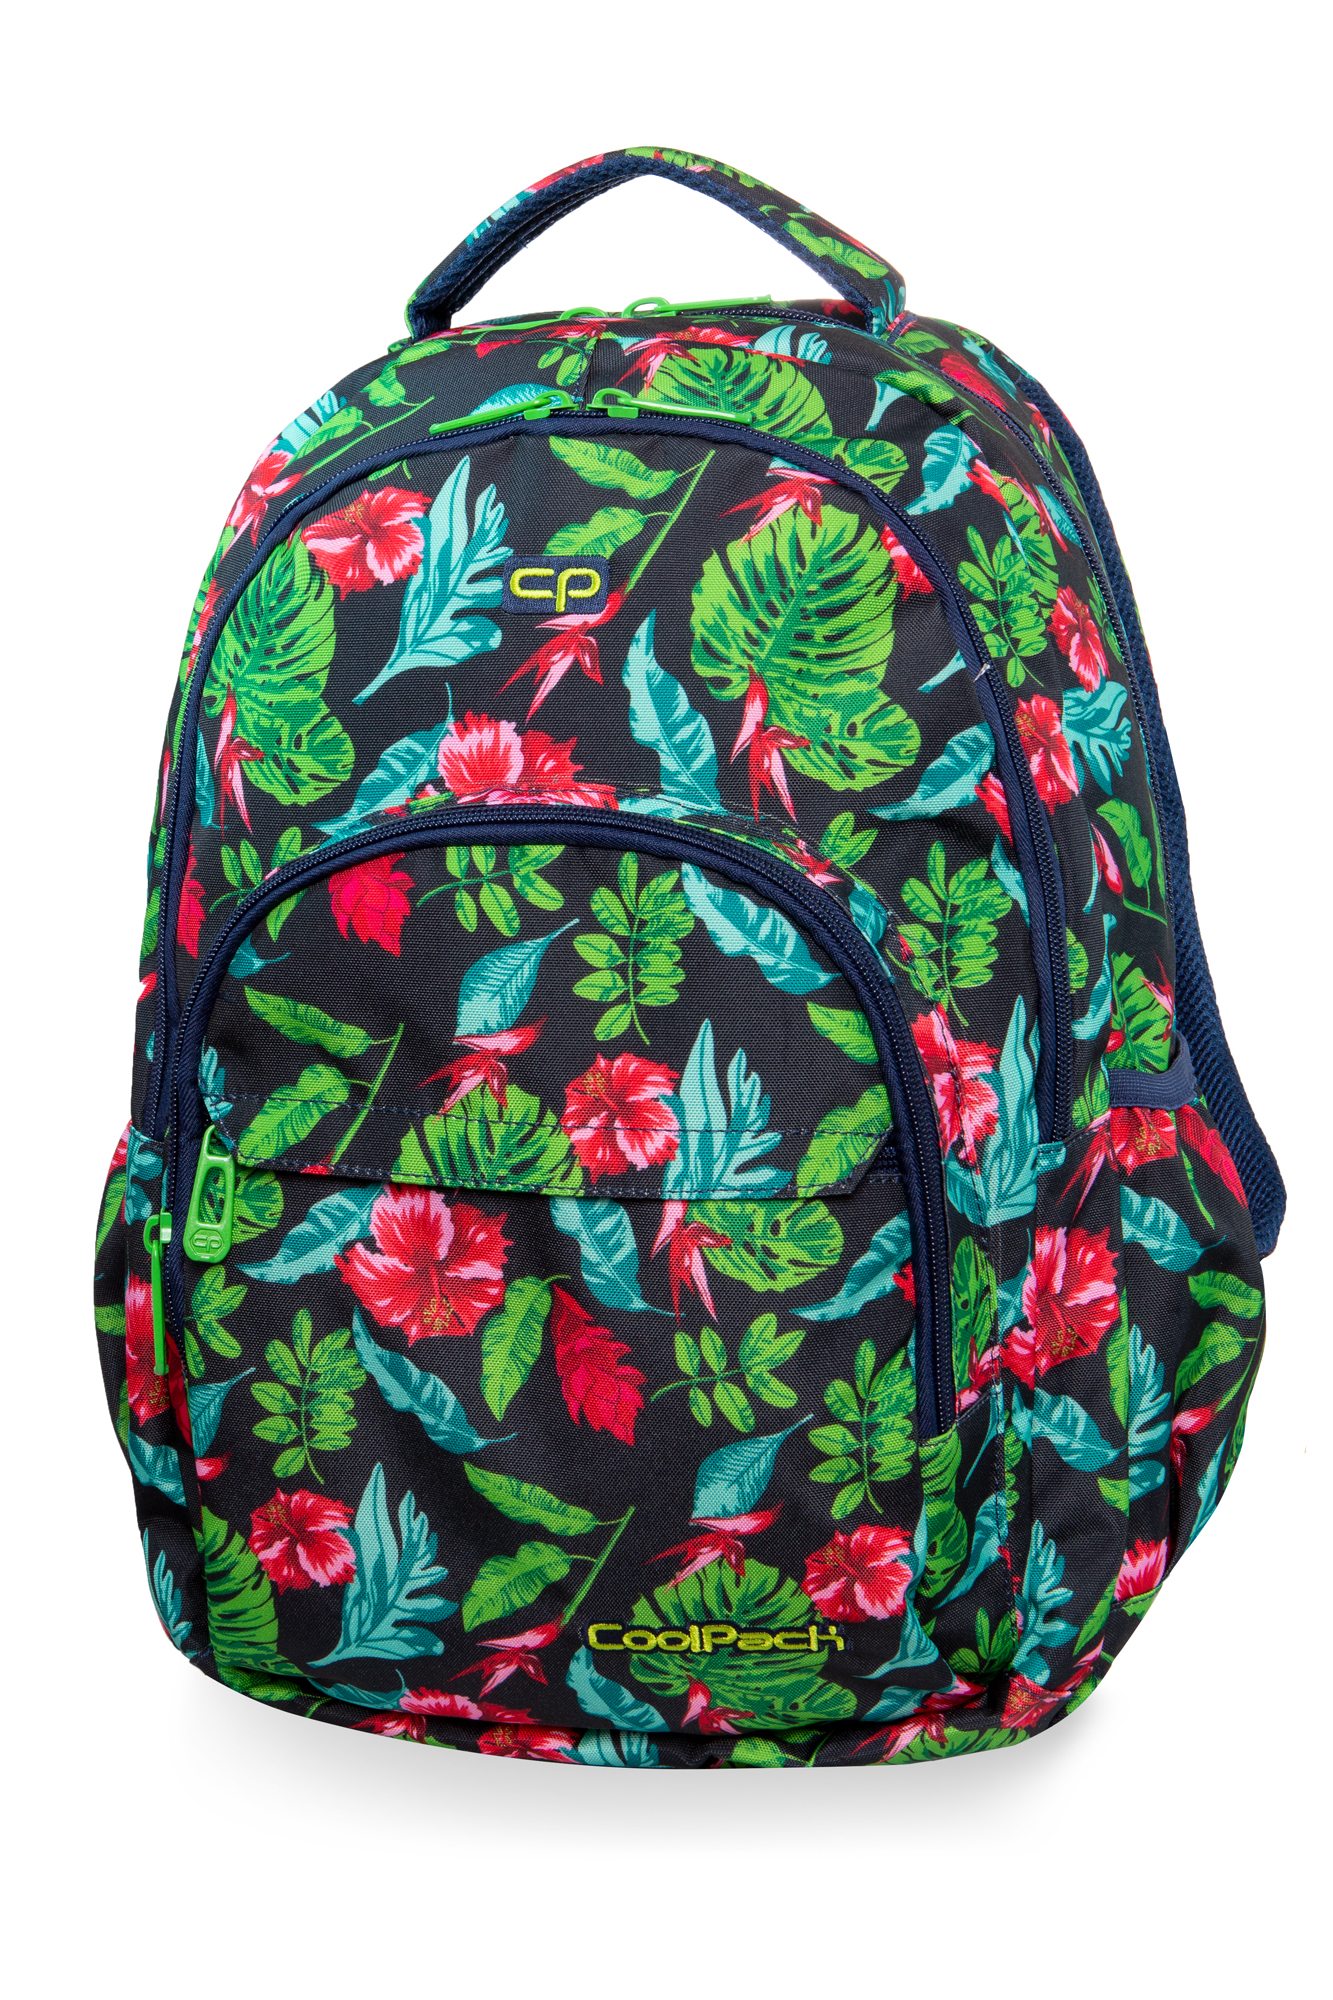 Coolpack - basic plus - youth backpack - candy jungle